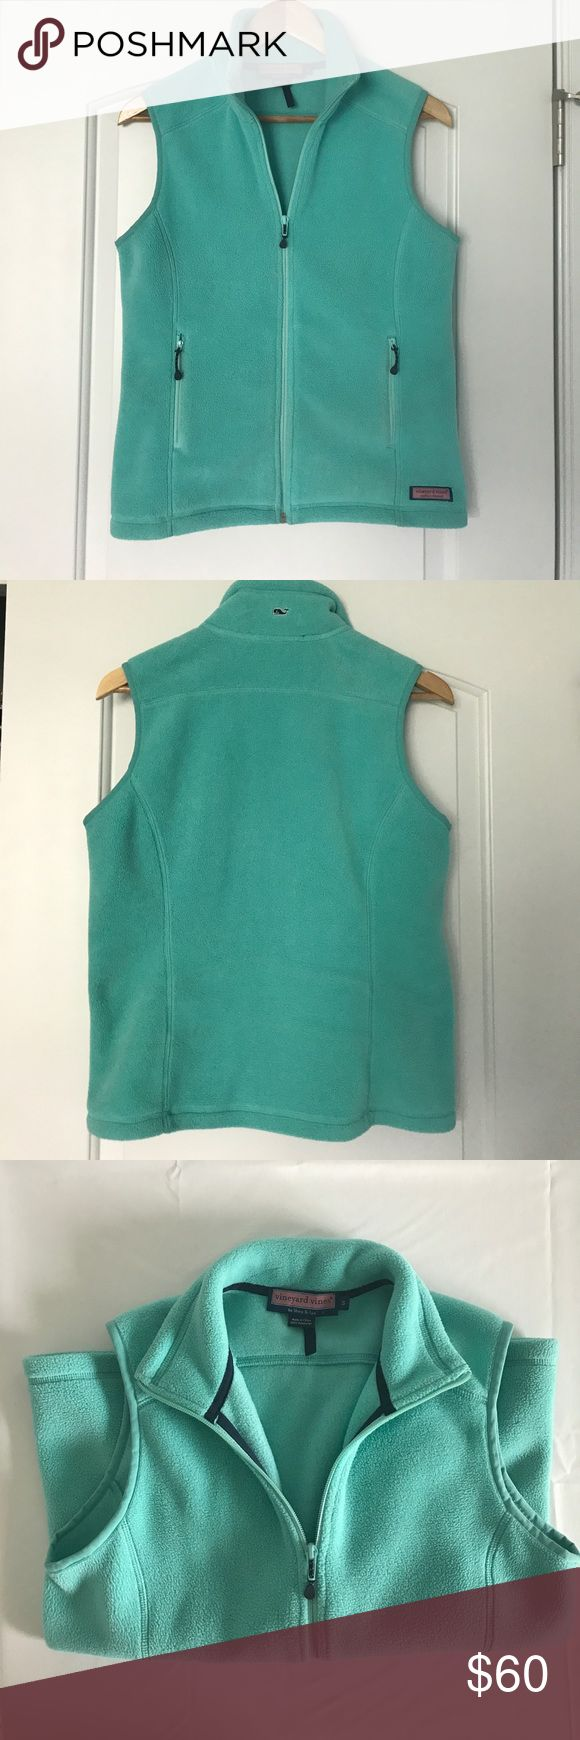 Vineyard Vines Teal Fleece Vest (S) Awesome teal vineyard vines fleece vest. Barely used and in GREAT condition. This is an absolutely perfect preppy and cozy layering piece. Size Small. Vineyard Vines Jackets & Coats Vests